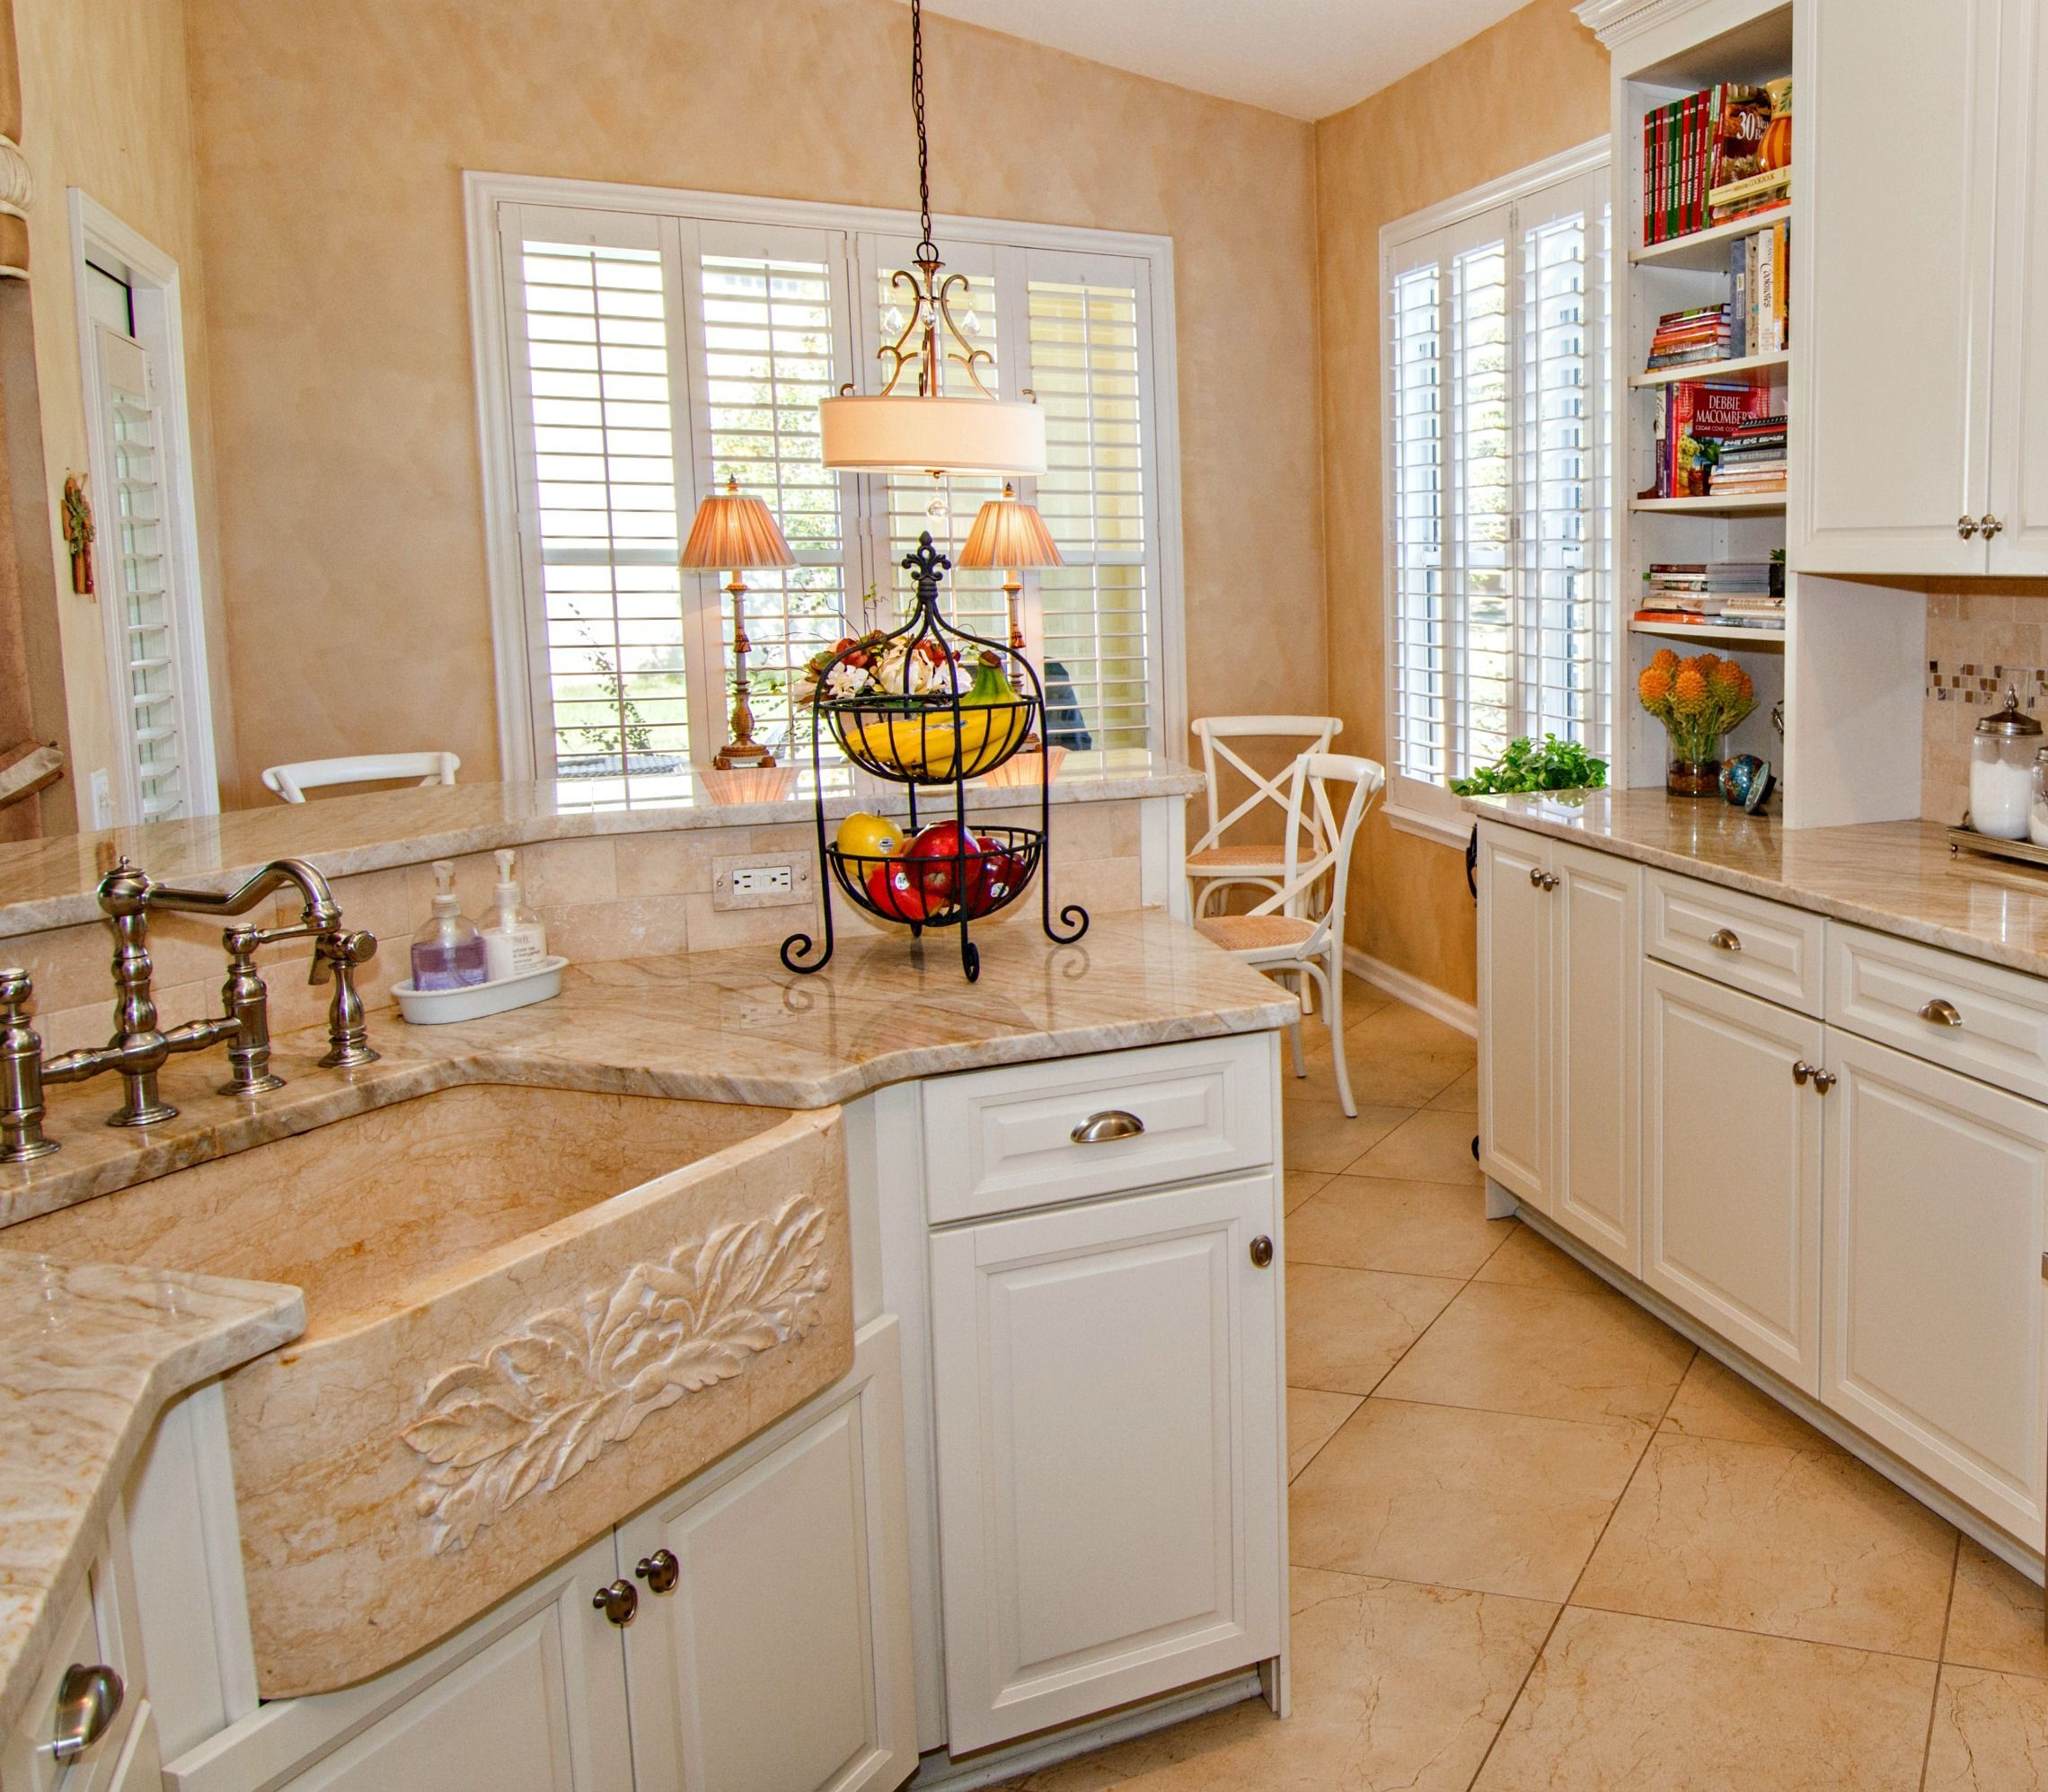 Jacksonville Fl Kitchen Renovation With Marble Farm Sink And